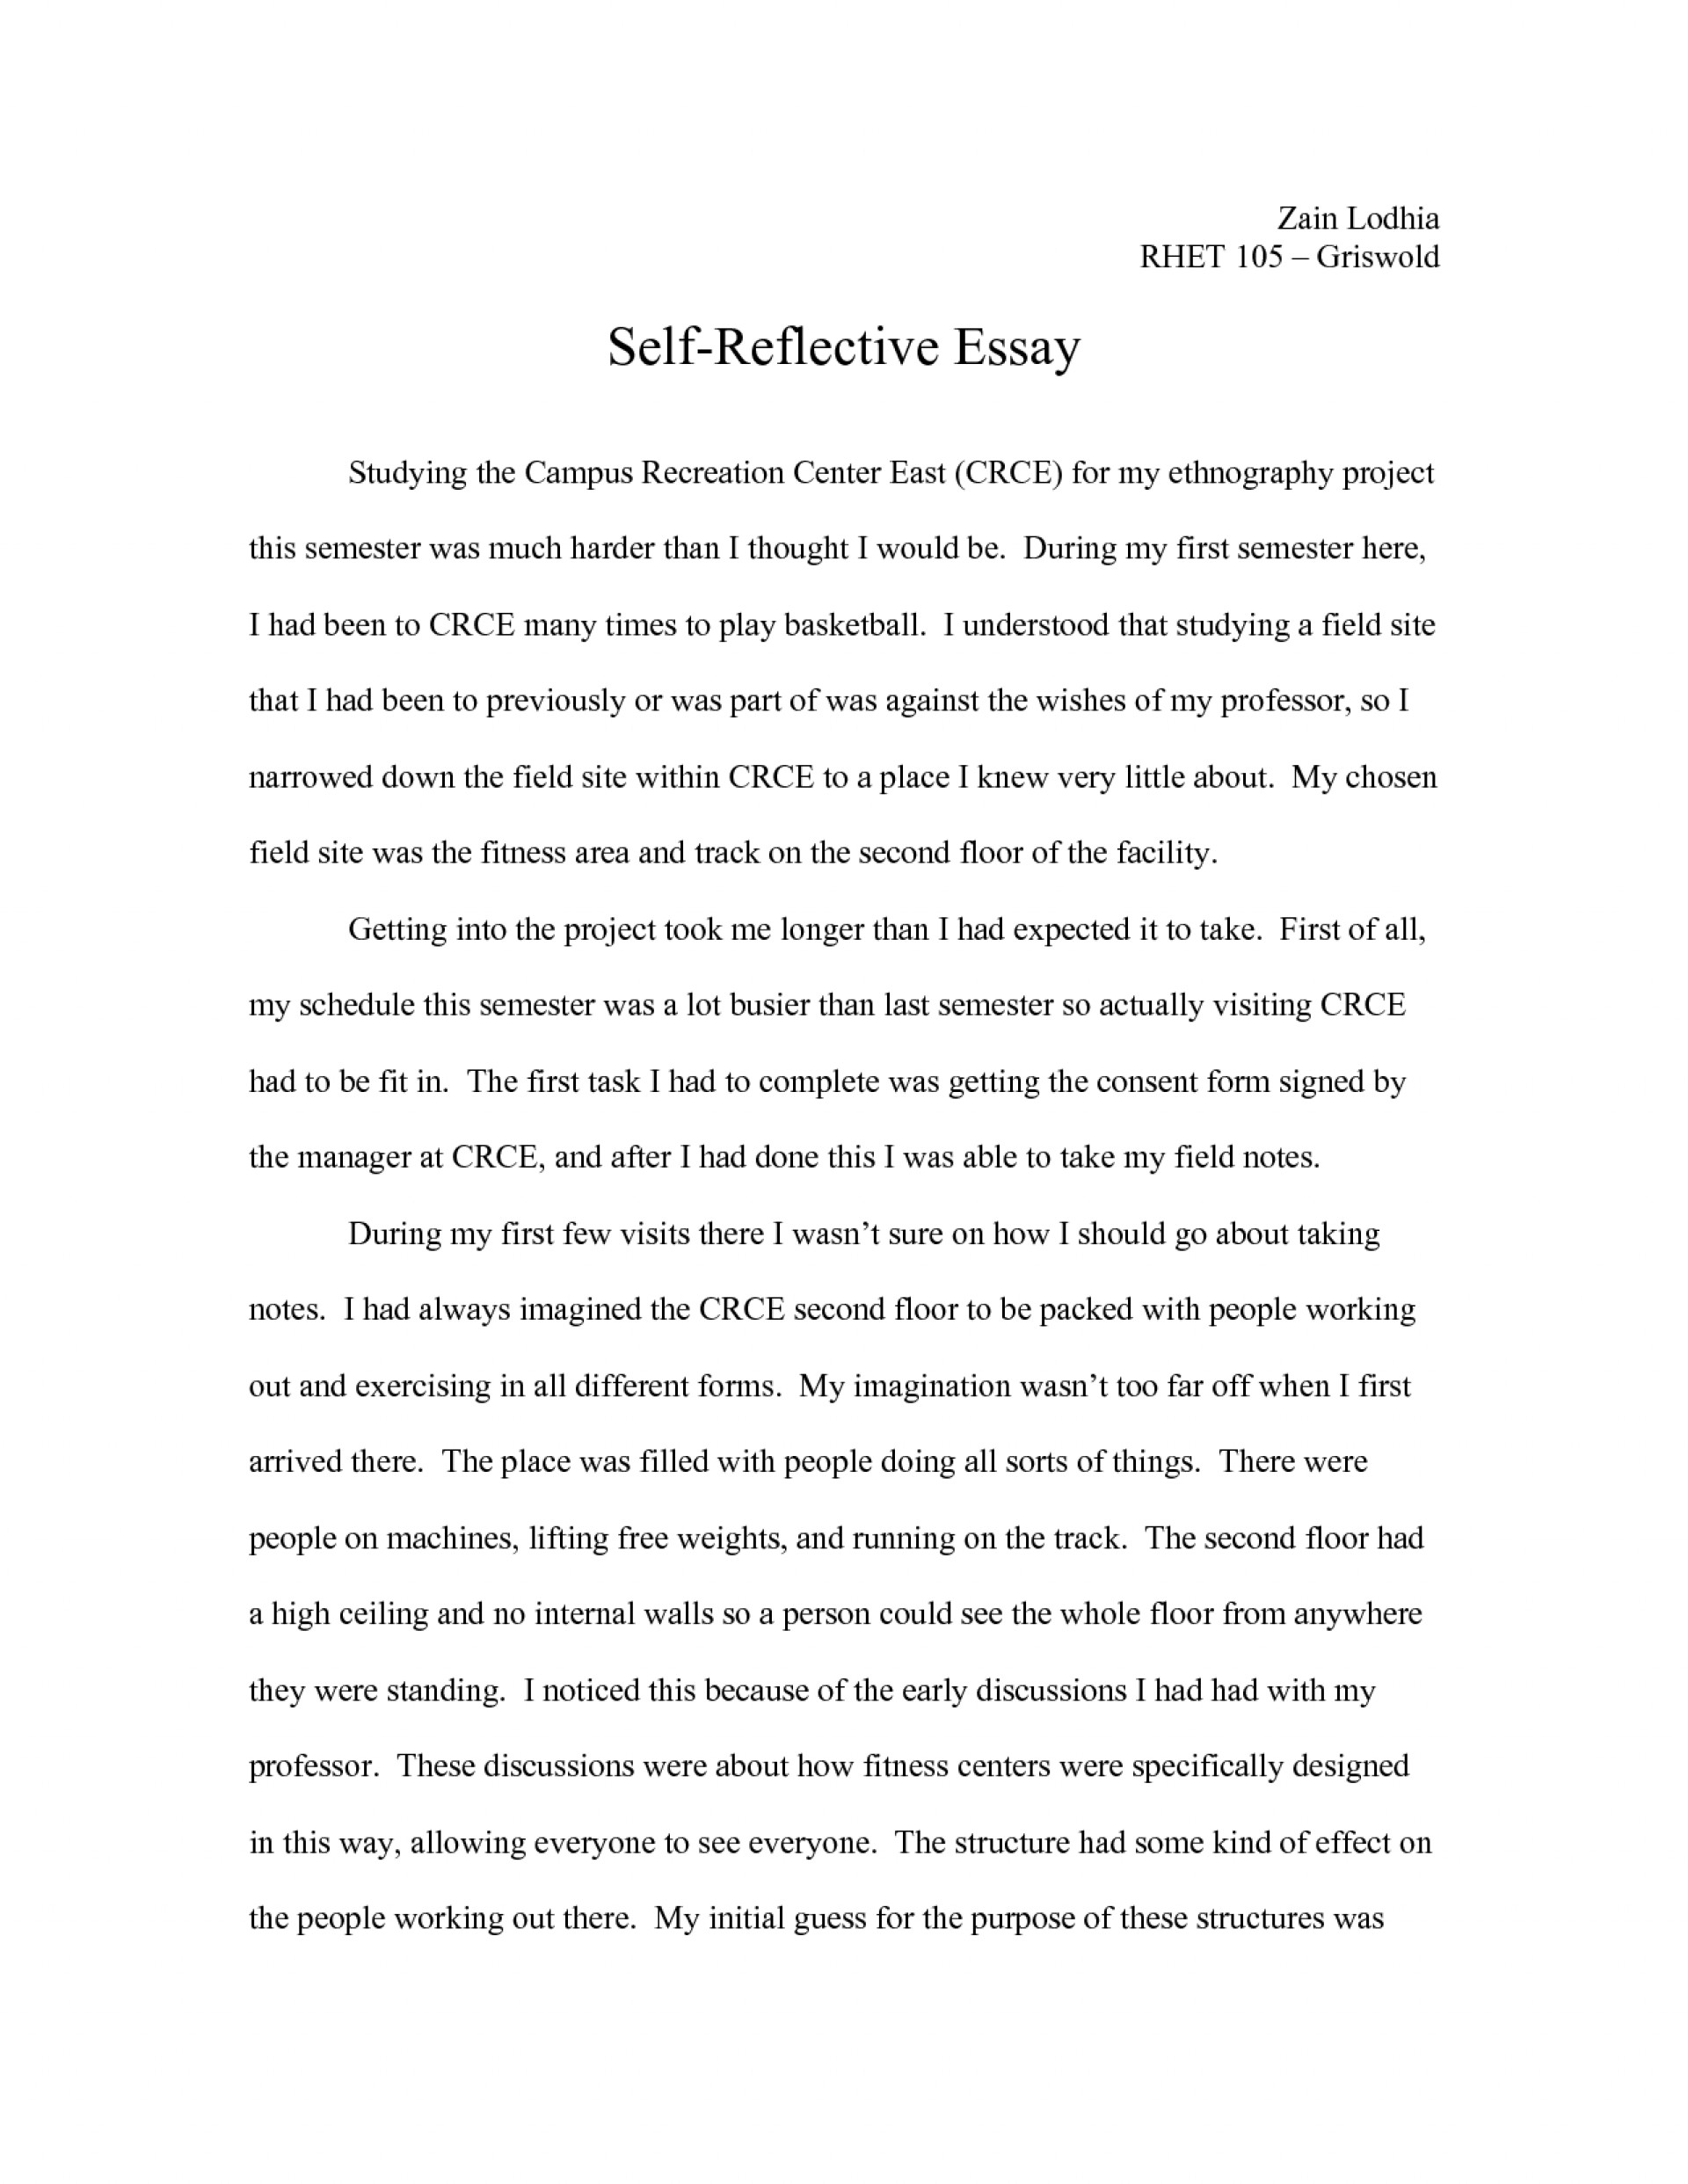 018 Essay Example Qal0pwnf46 How To Start An Unusual Conclusion A History Sentence For Write Expository 1920